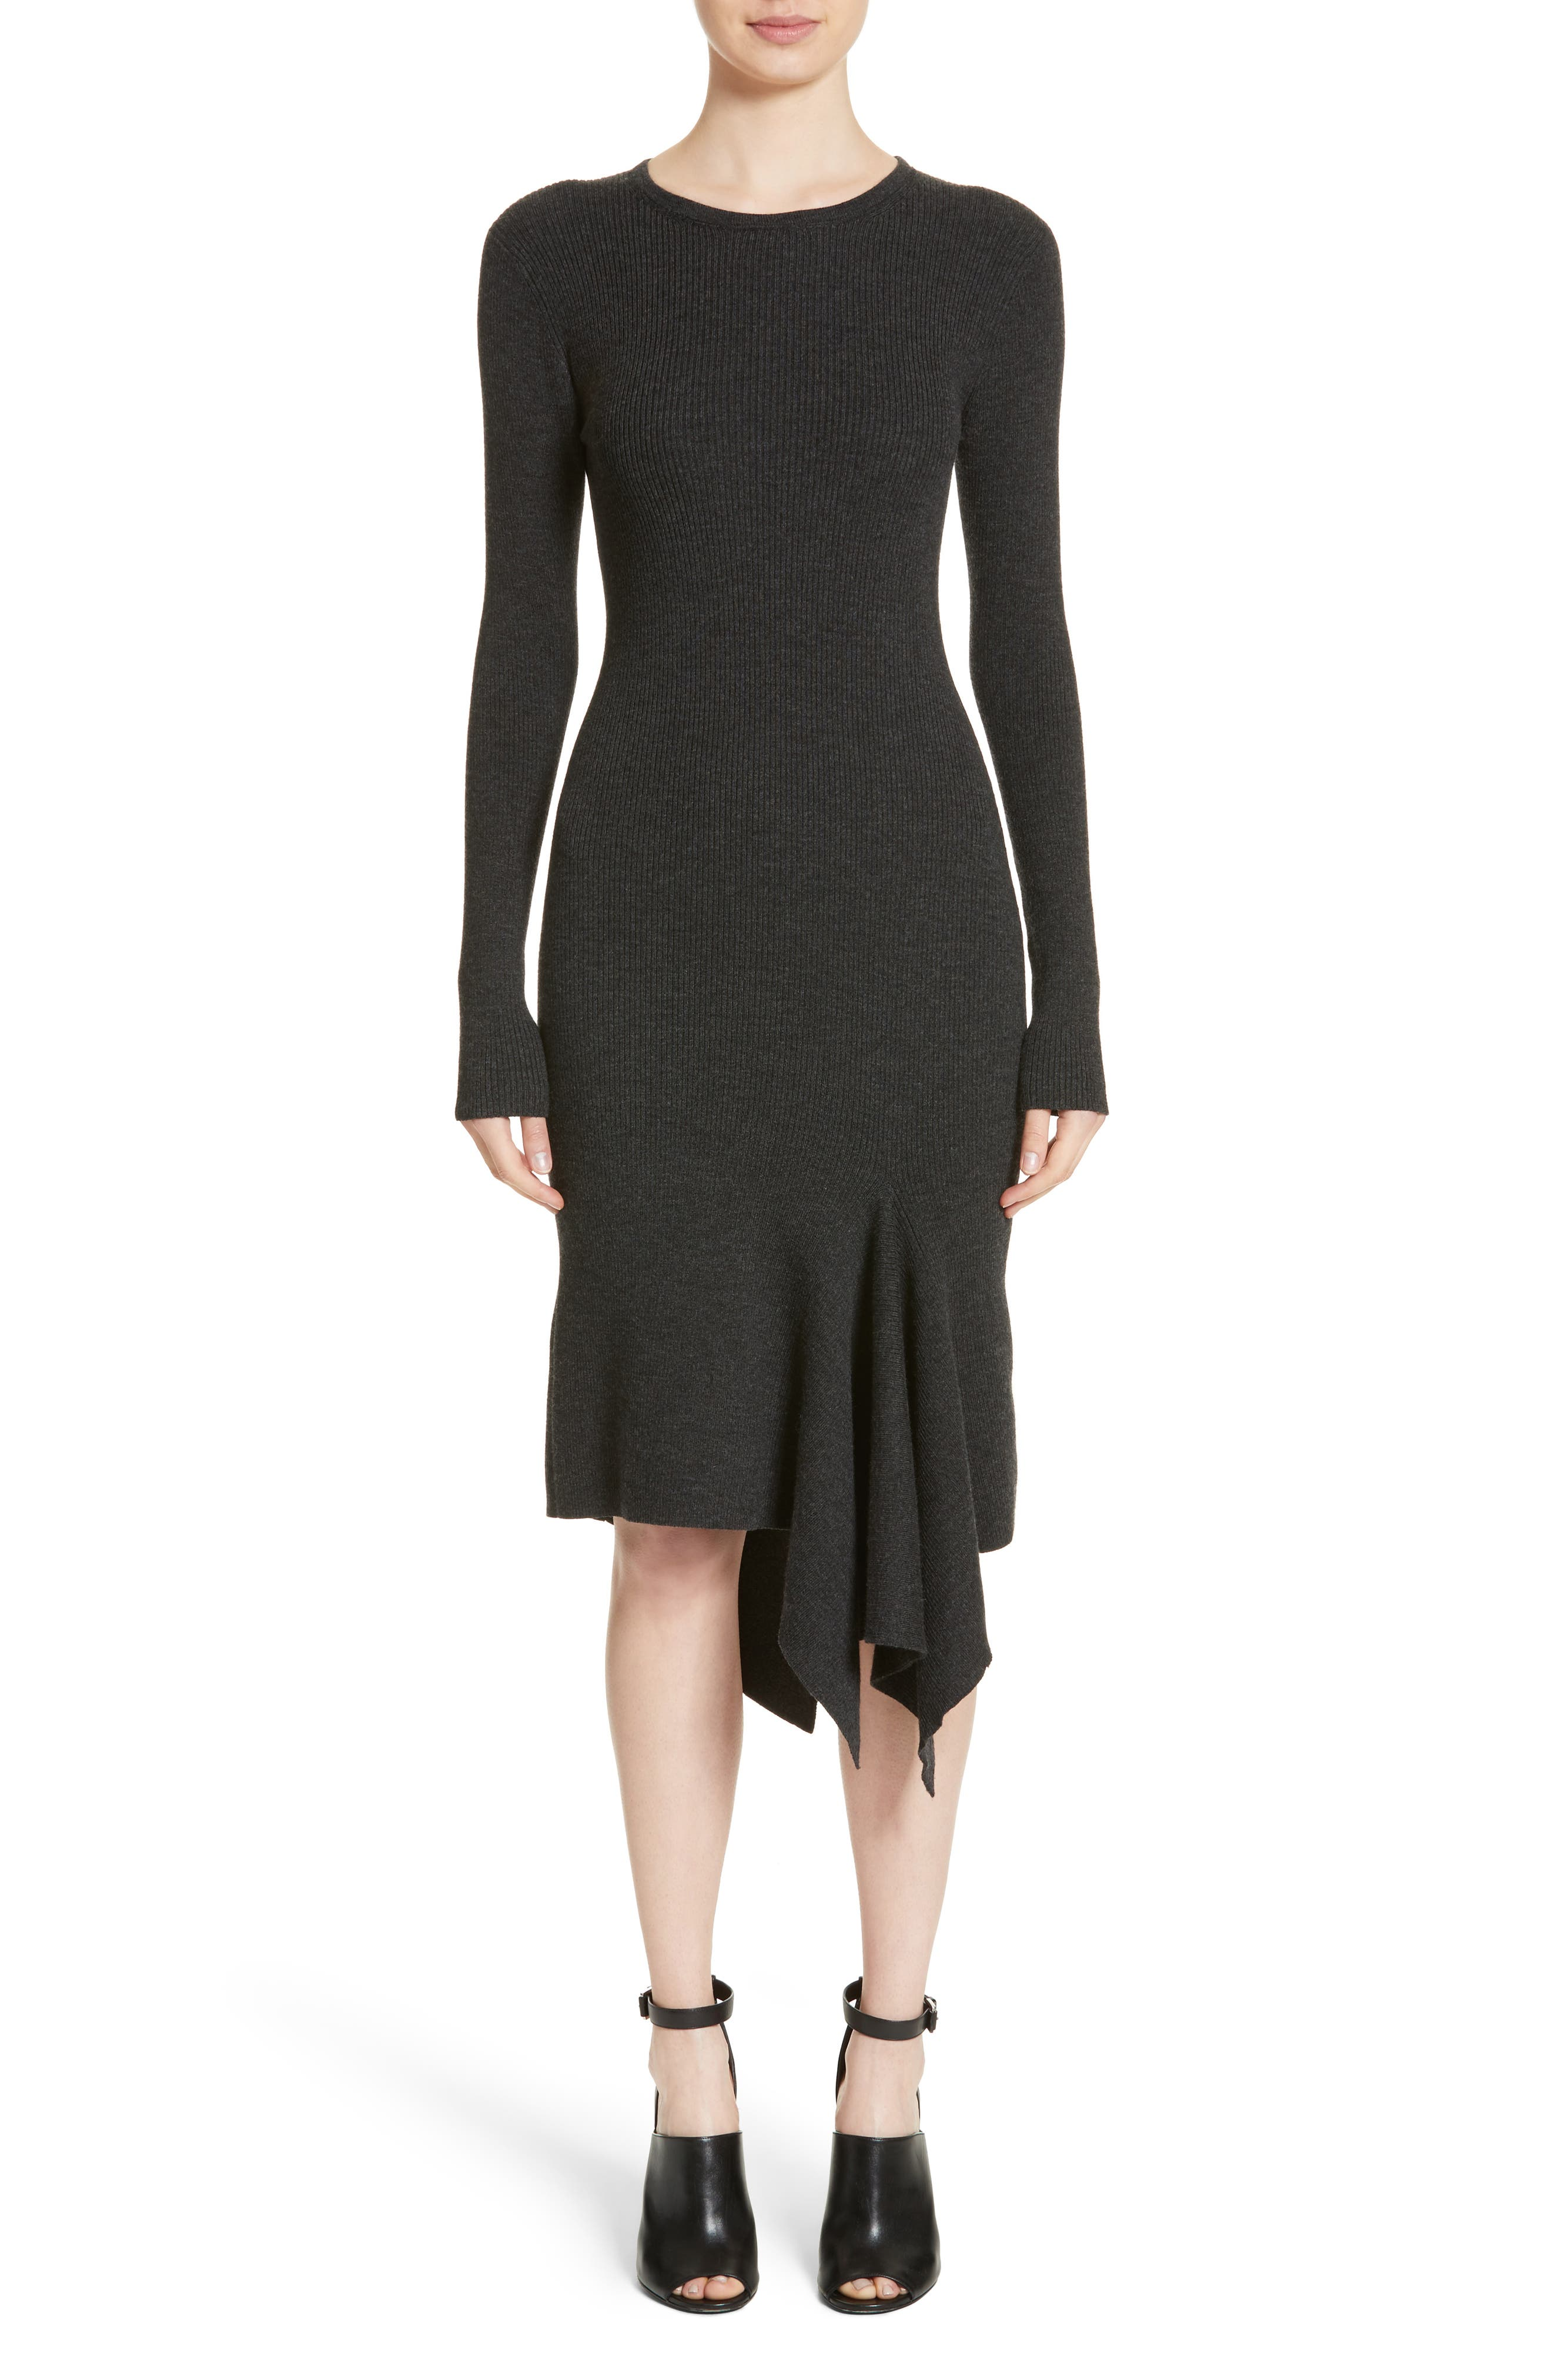 Main Image - Michael Kors Merino Wool Blend Handkerchief Hem Dress